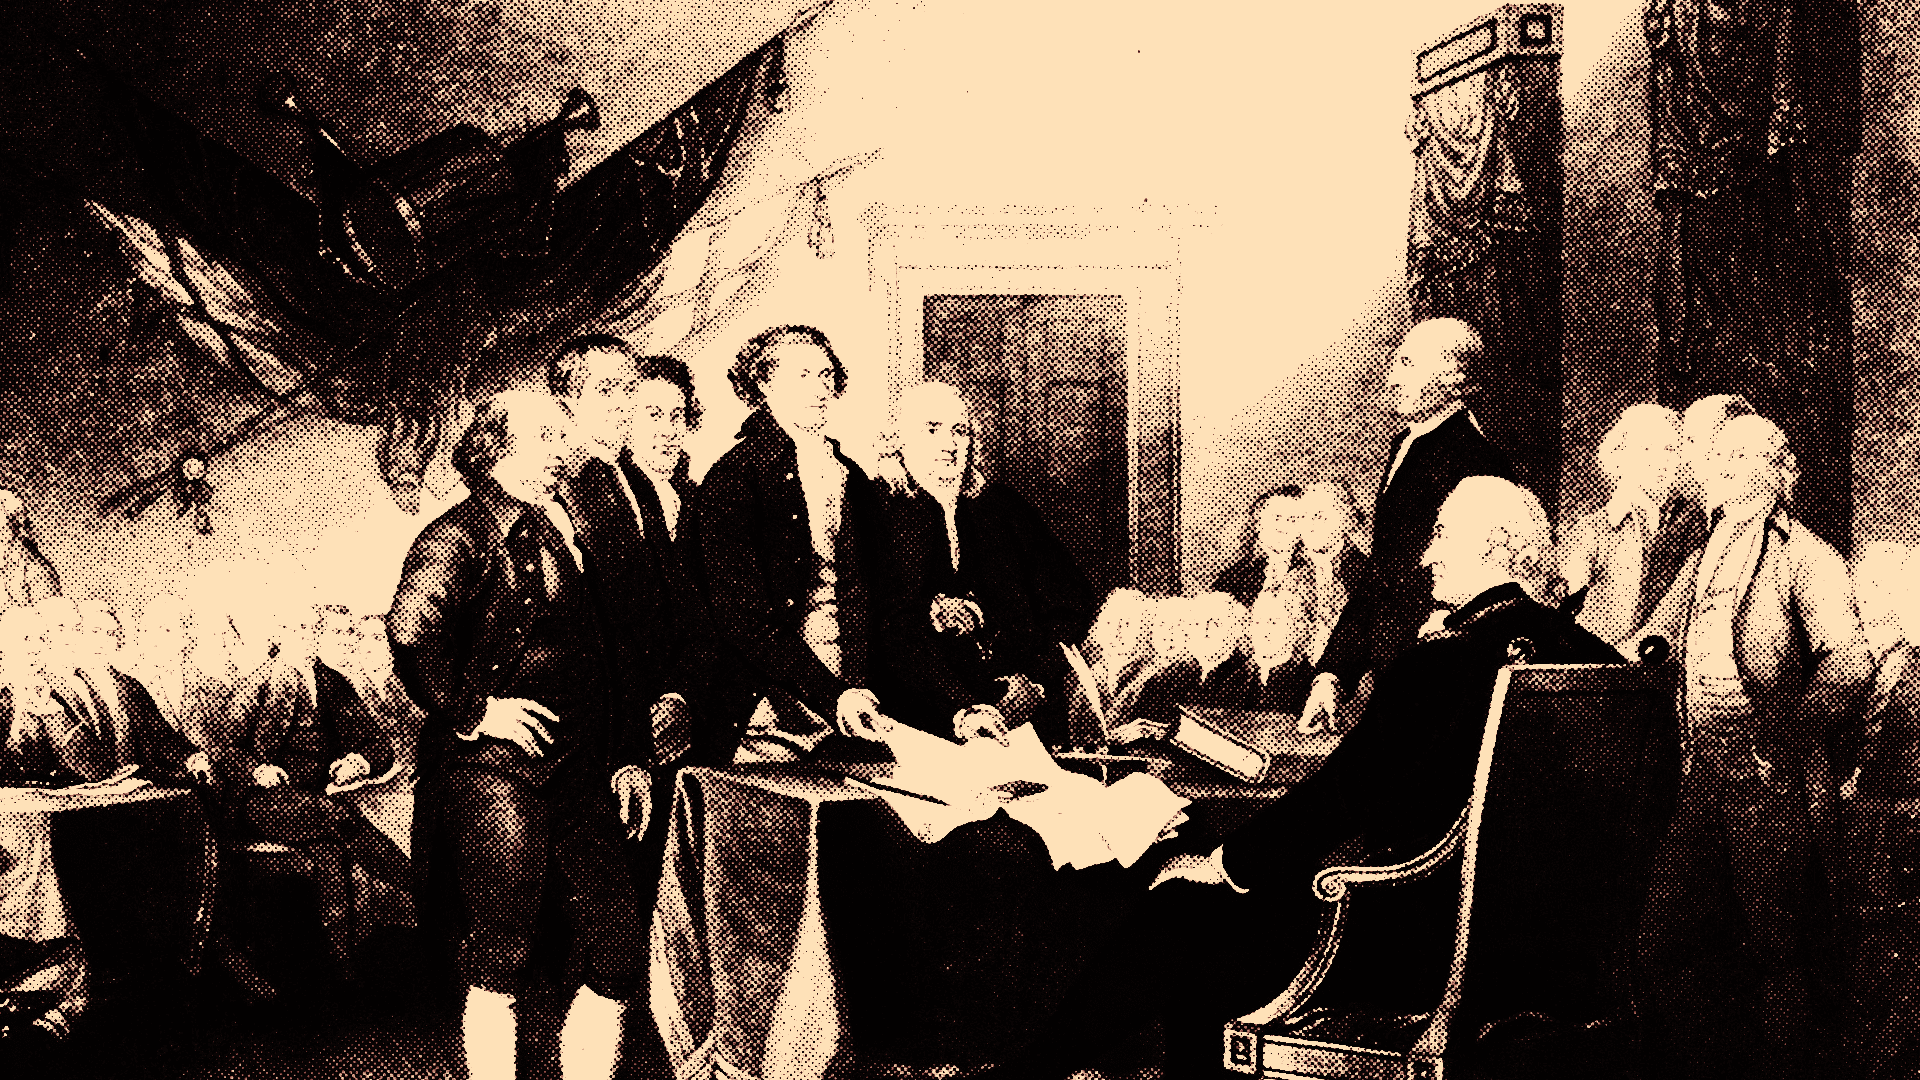 Signing of the Declaration of Independence.